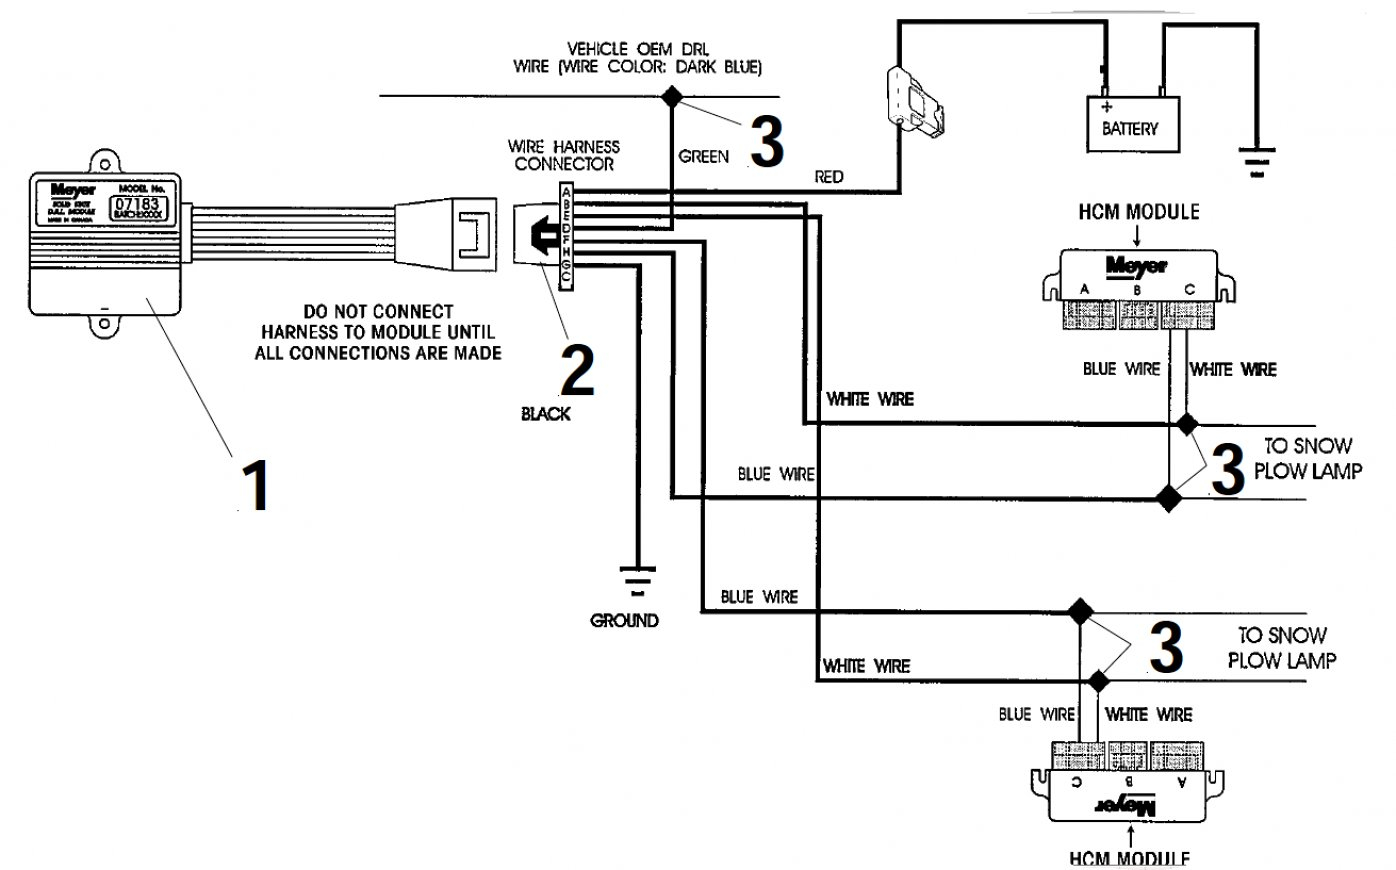 Meyer E 60 Snow Plow Wiring Diagram | Manual E-Books - Meyers Snow Plow Wiring Diagram E47